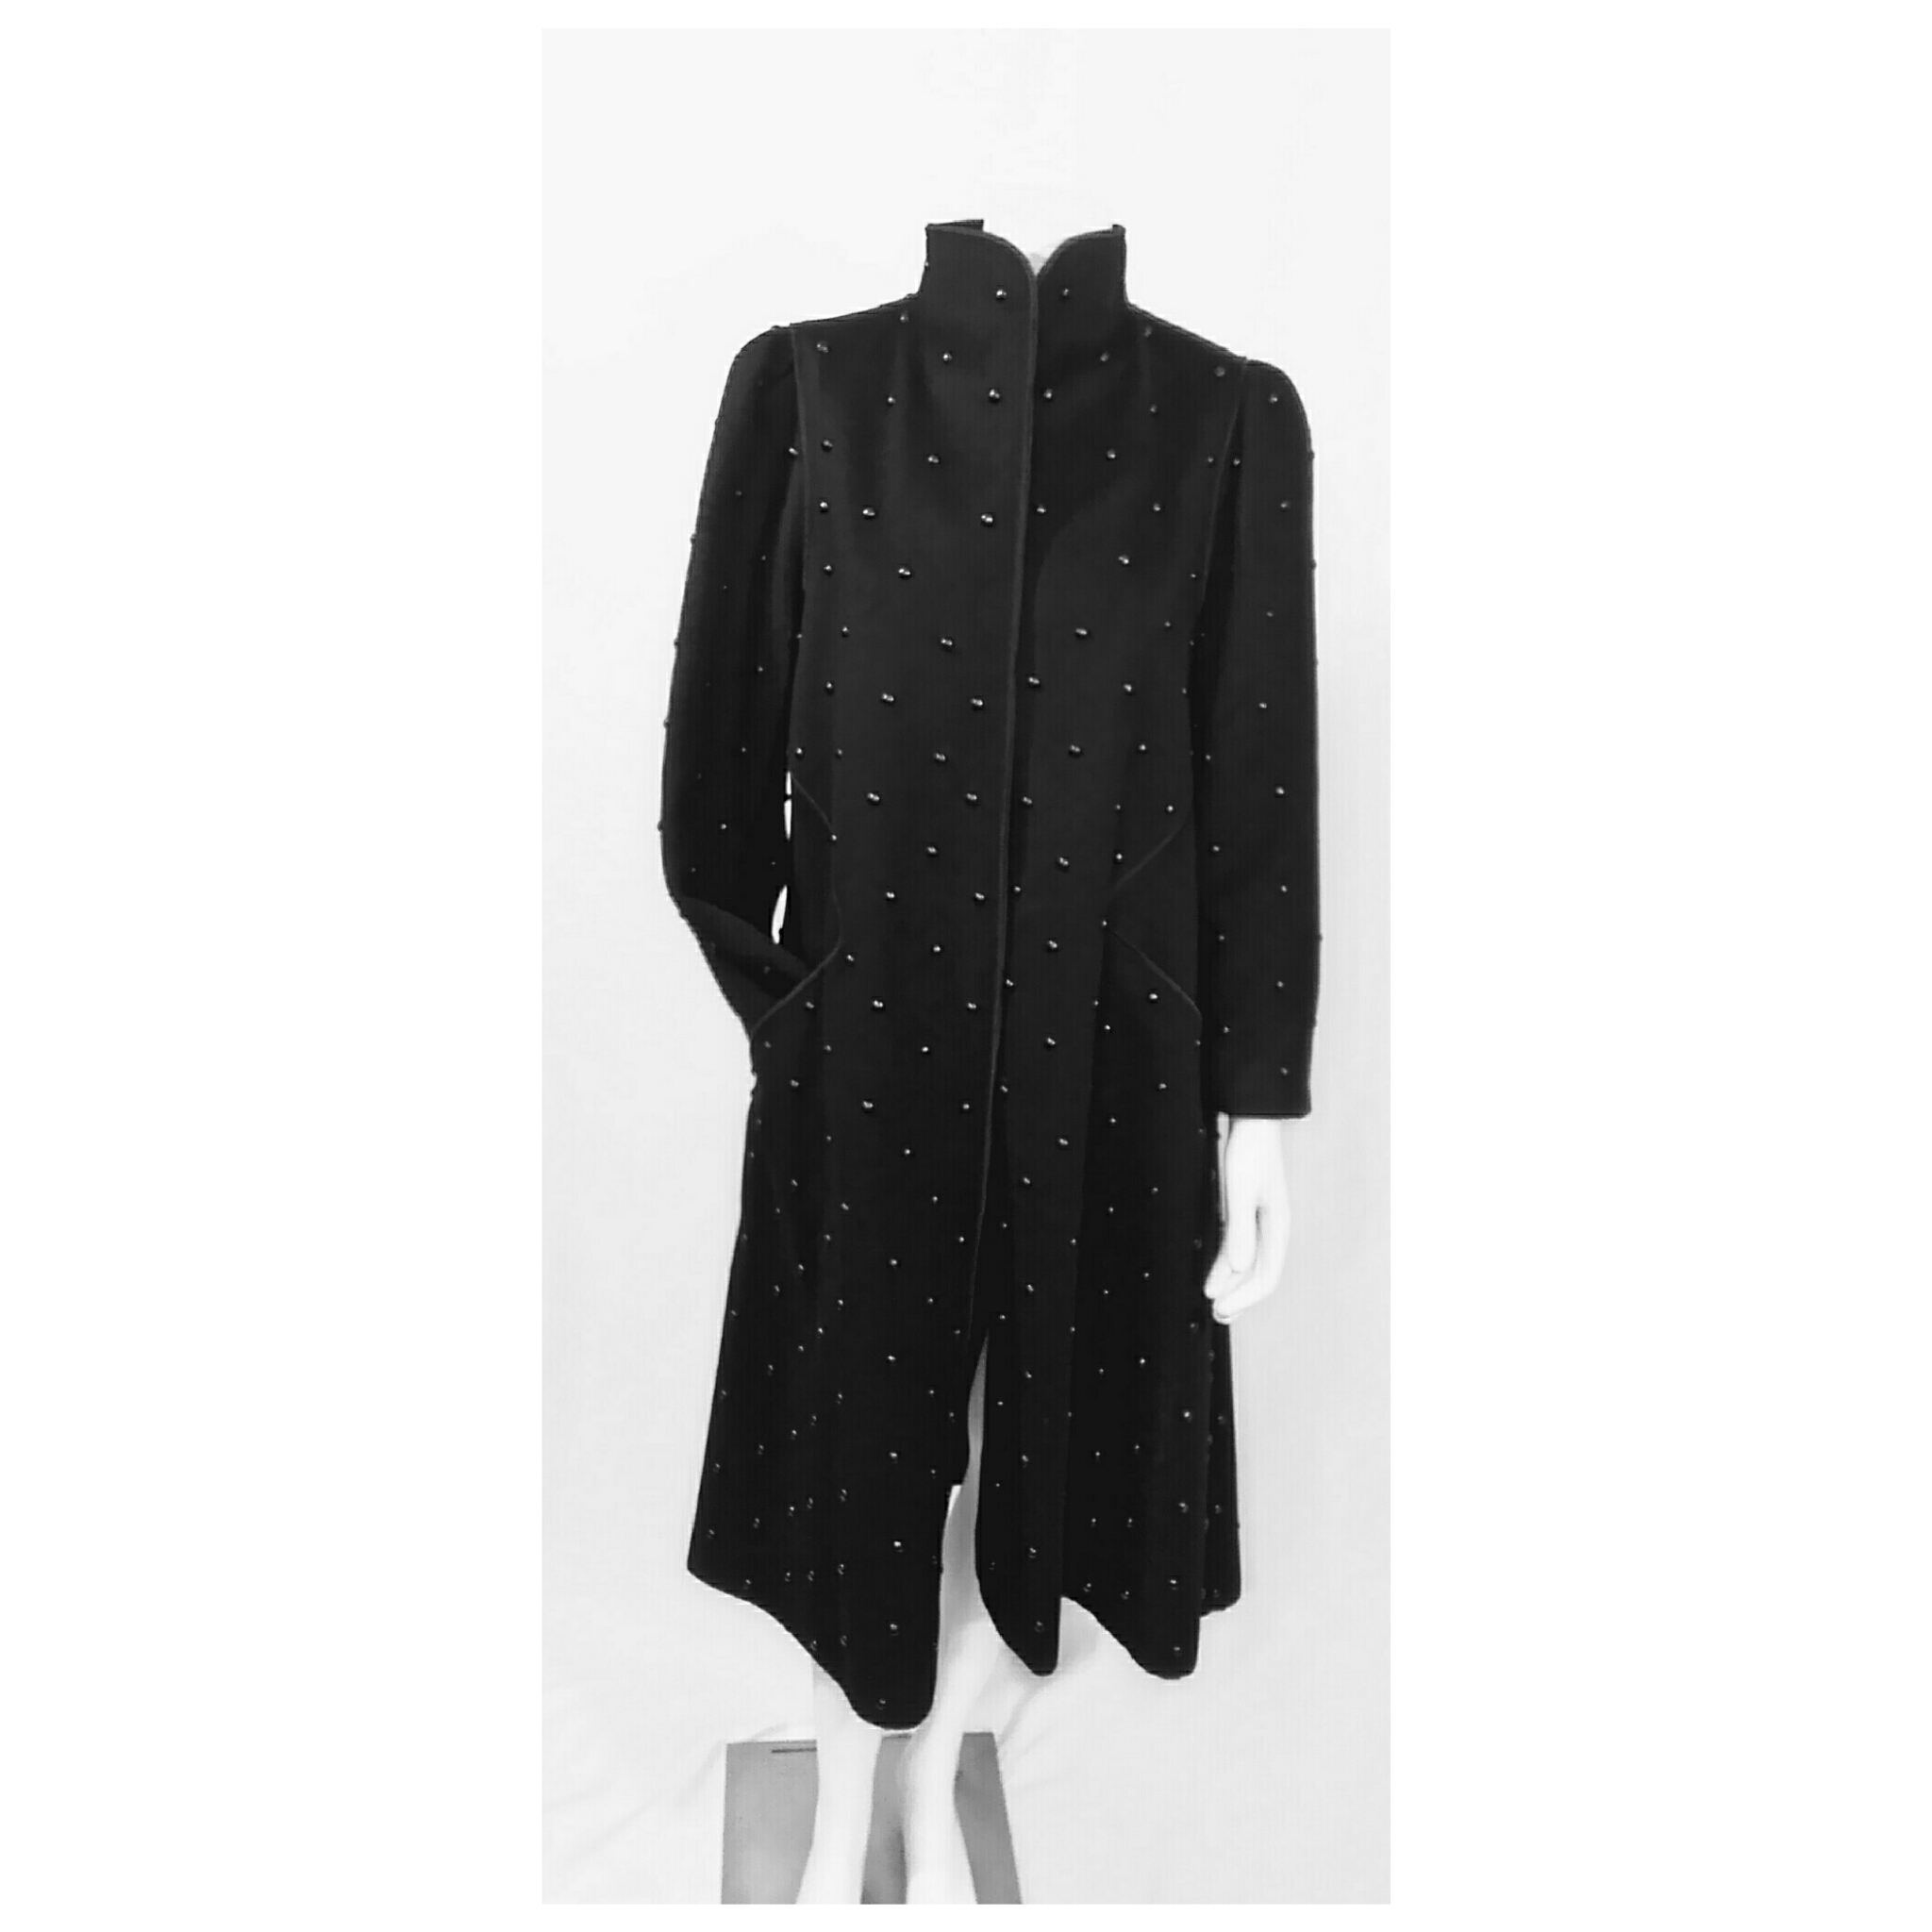 4f39b556134 Vintage 1970's Rare Mrs. H. Winter Beaded Embellished Black Wool Coat with  Matching Suede Scarf; Black Wool Embellished Coat; Harriet Winter